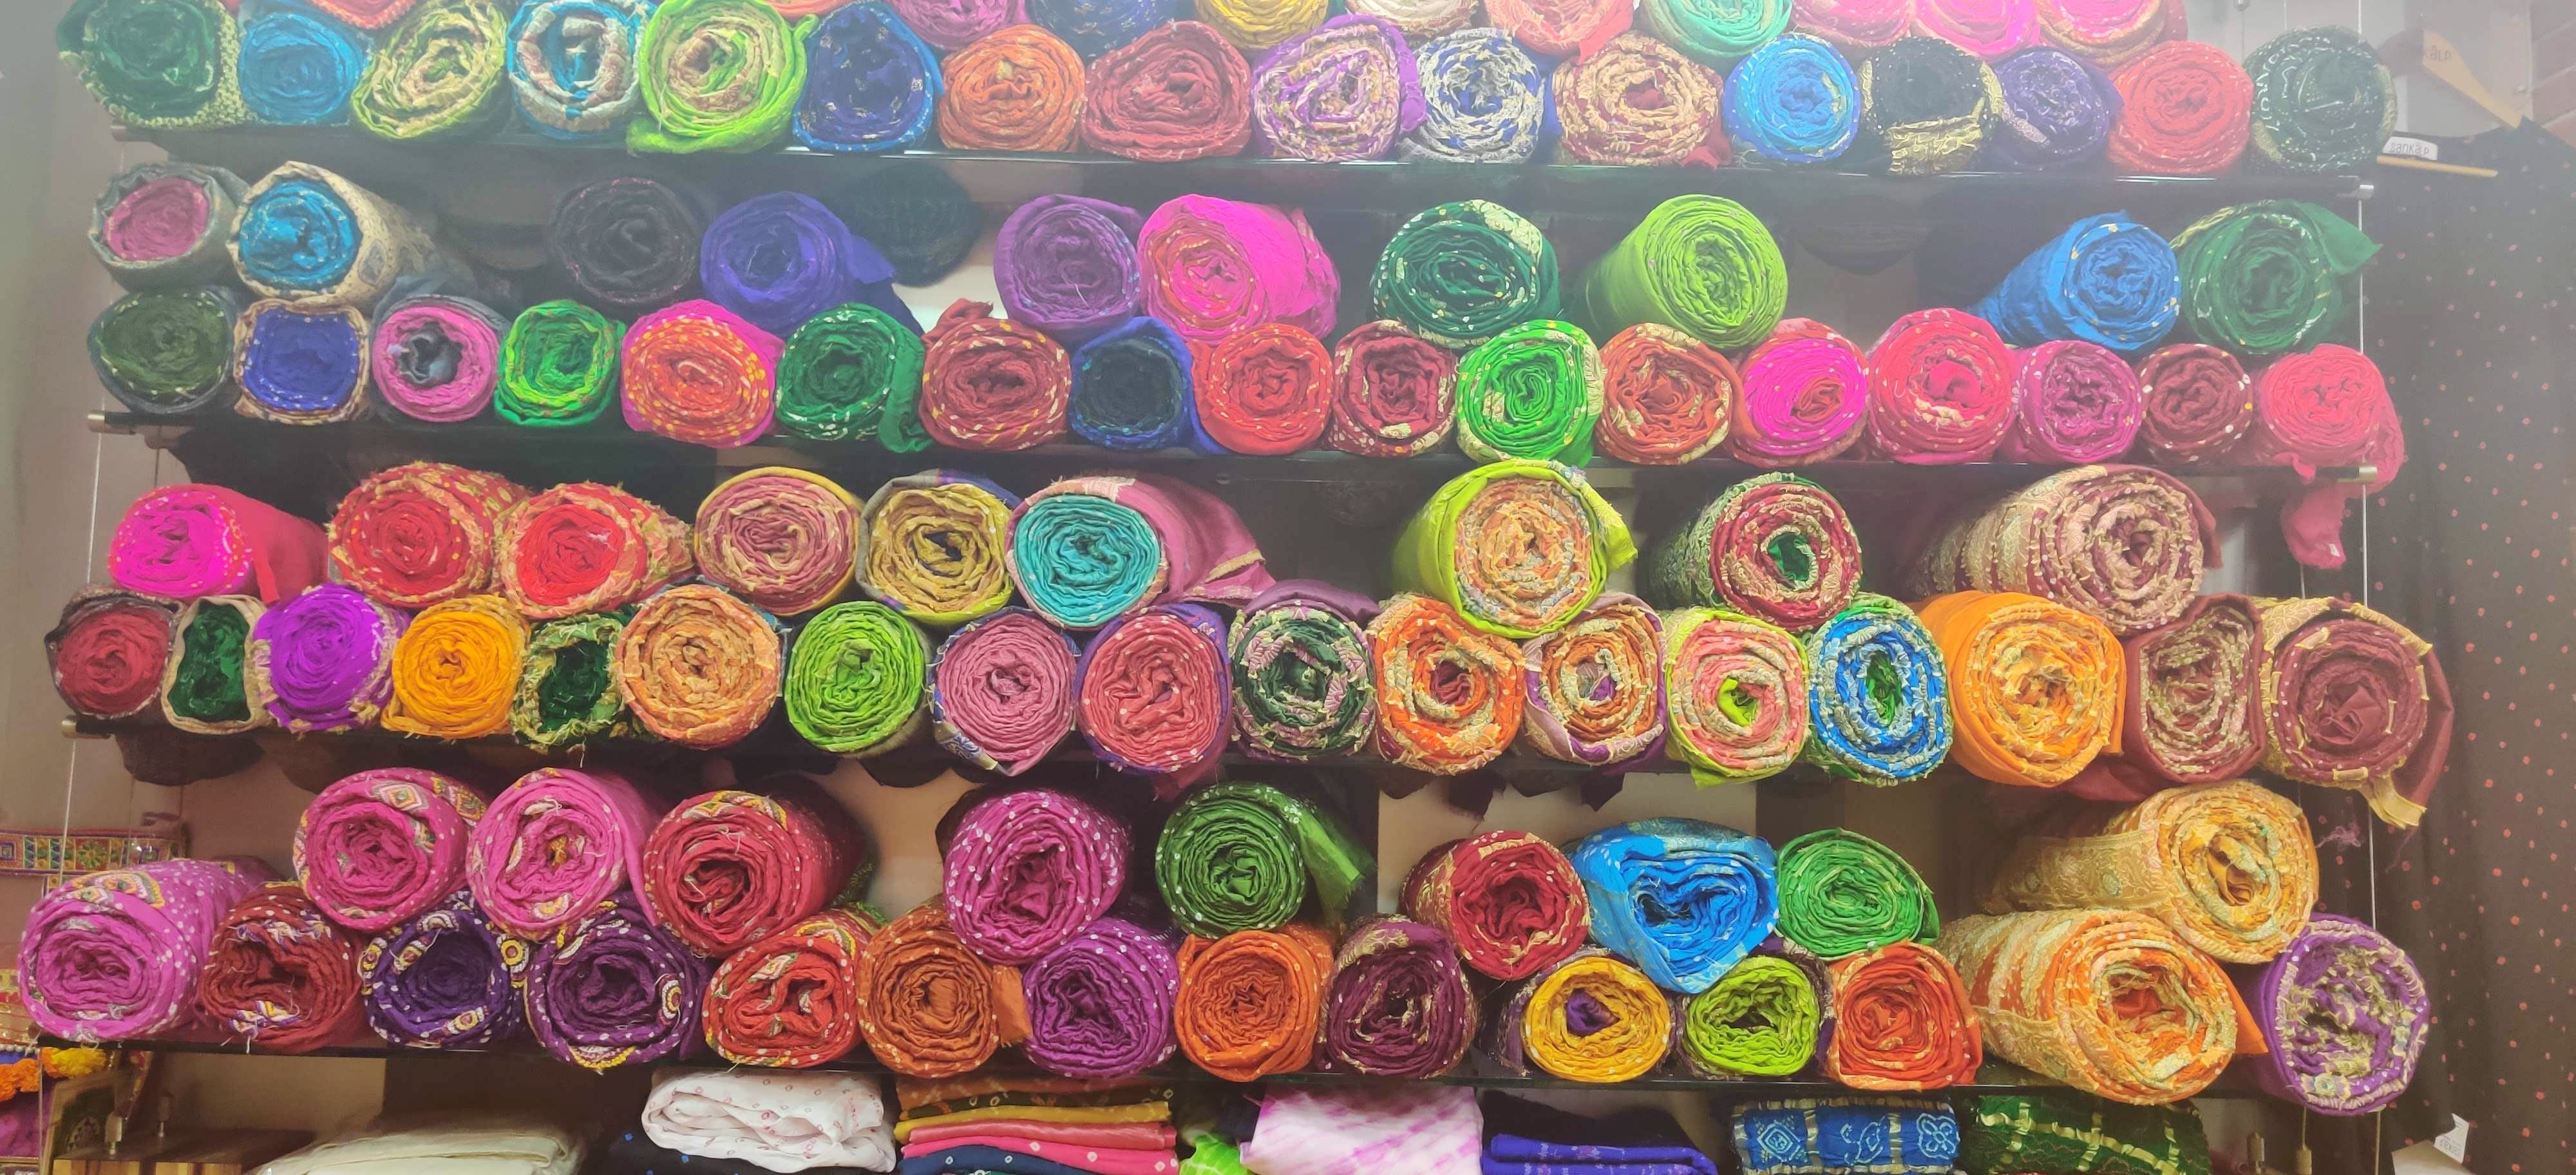 Colorfulness,Rose,Textile,Circle,Flower,Plant,Thread,Rose family